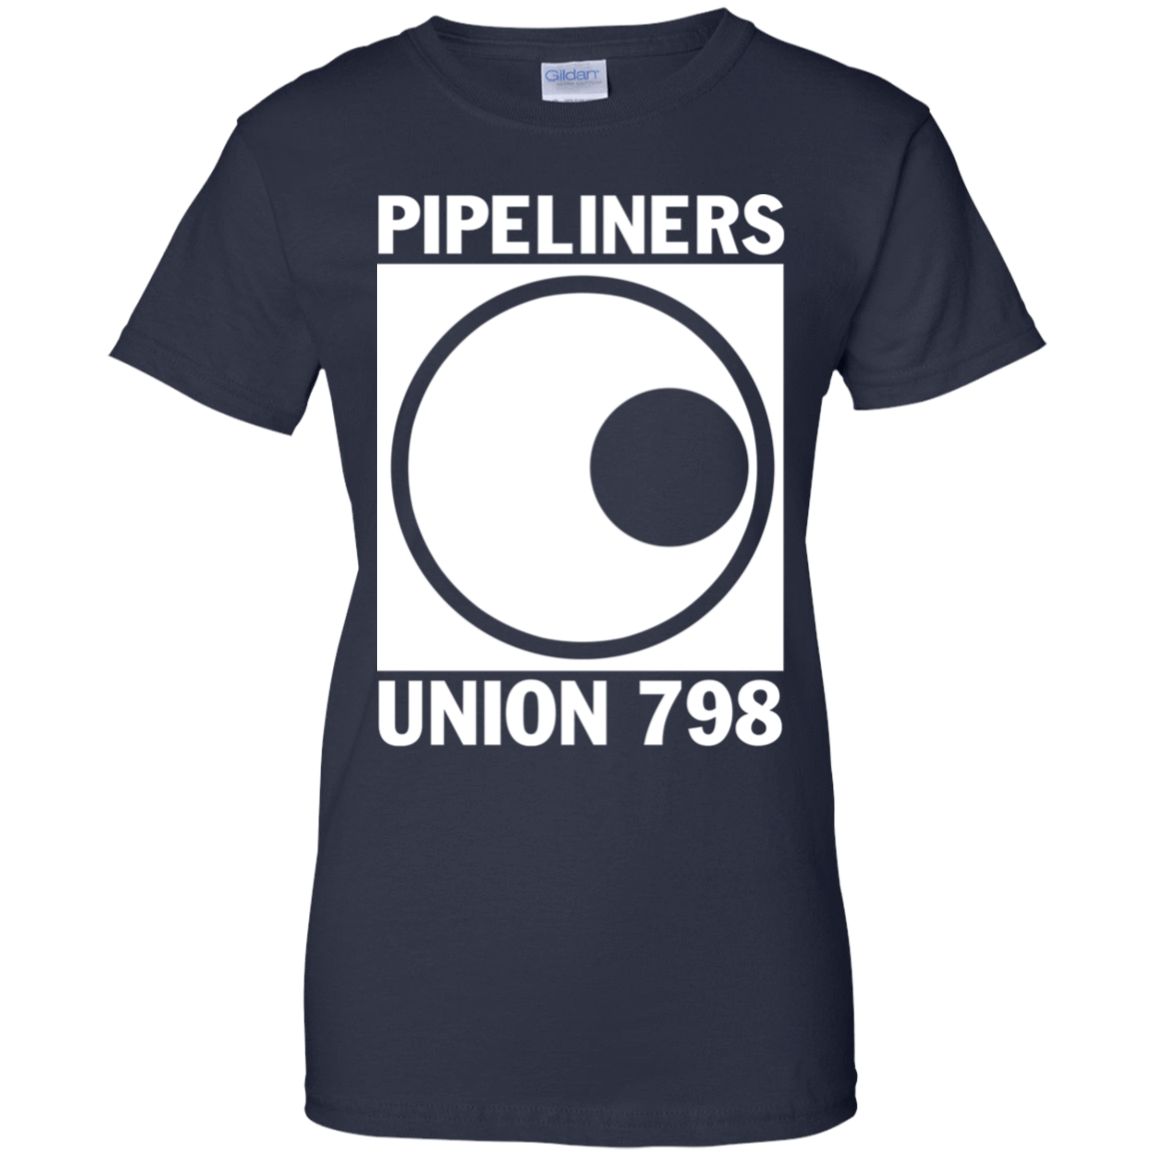 I'm A Union Member Pipeliners Union 798 939-9259-73302072-44765 - Tee Ript